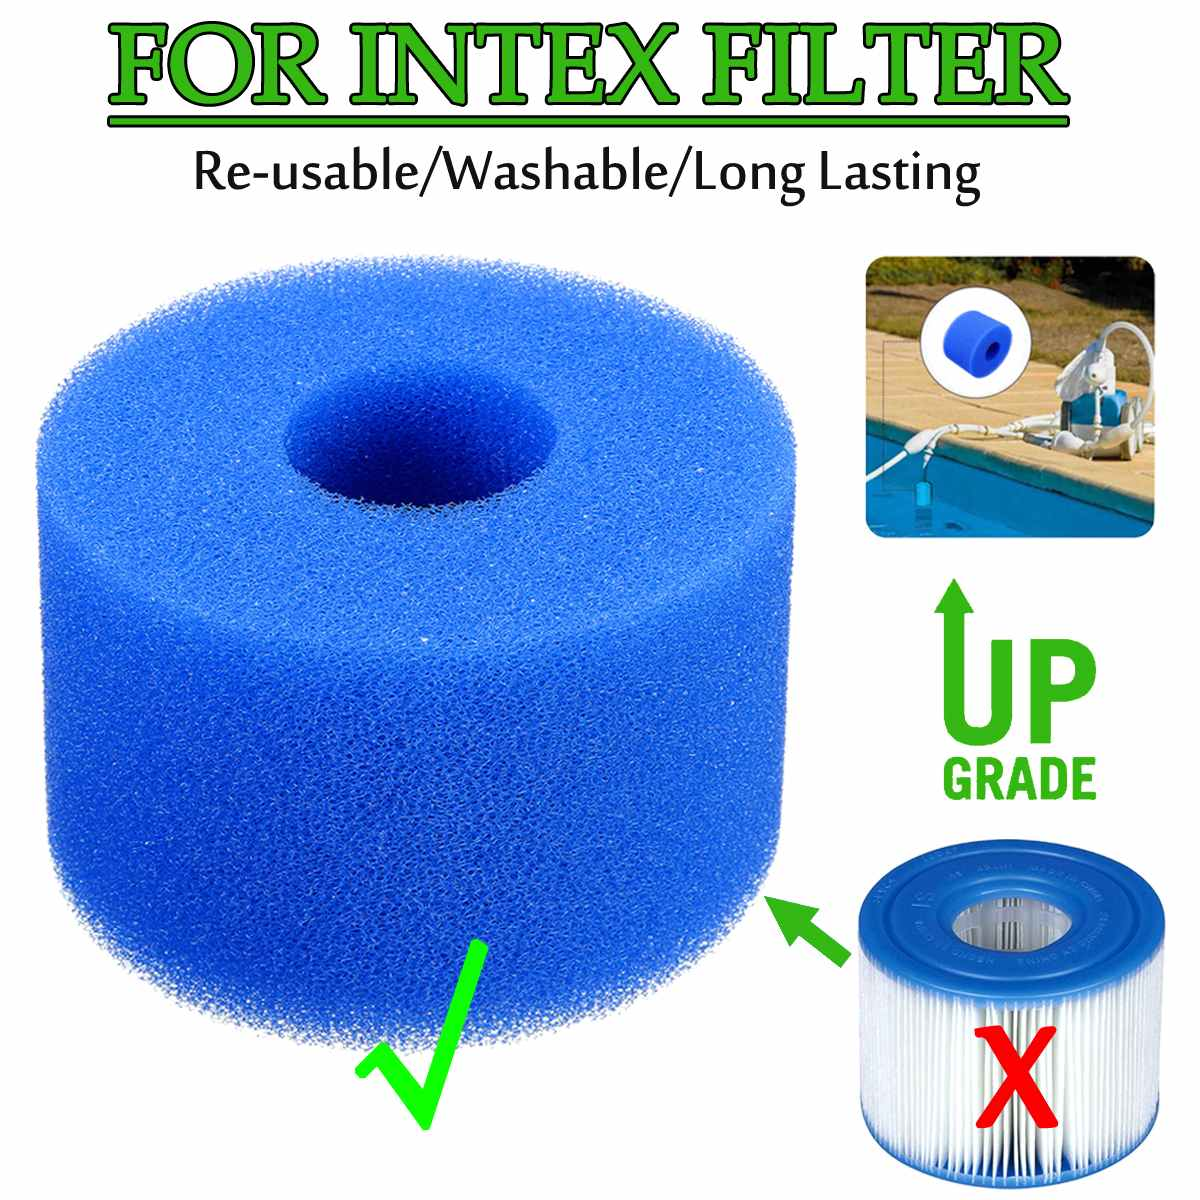 Swimming Pool Filter Foam Reusable Washable Sponge Cartridge Foam Suitable Bubble Jetted Pure SPA For Intex S1 Type Pool Filter